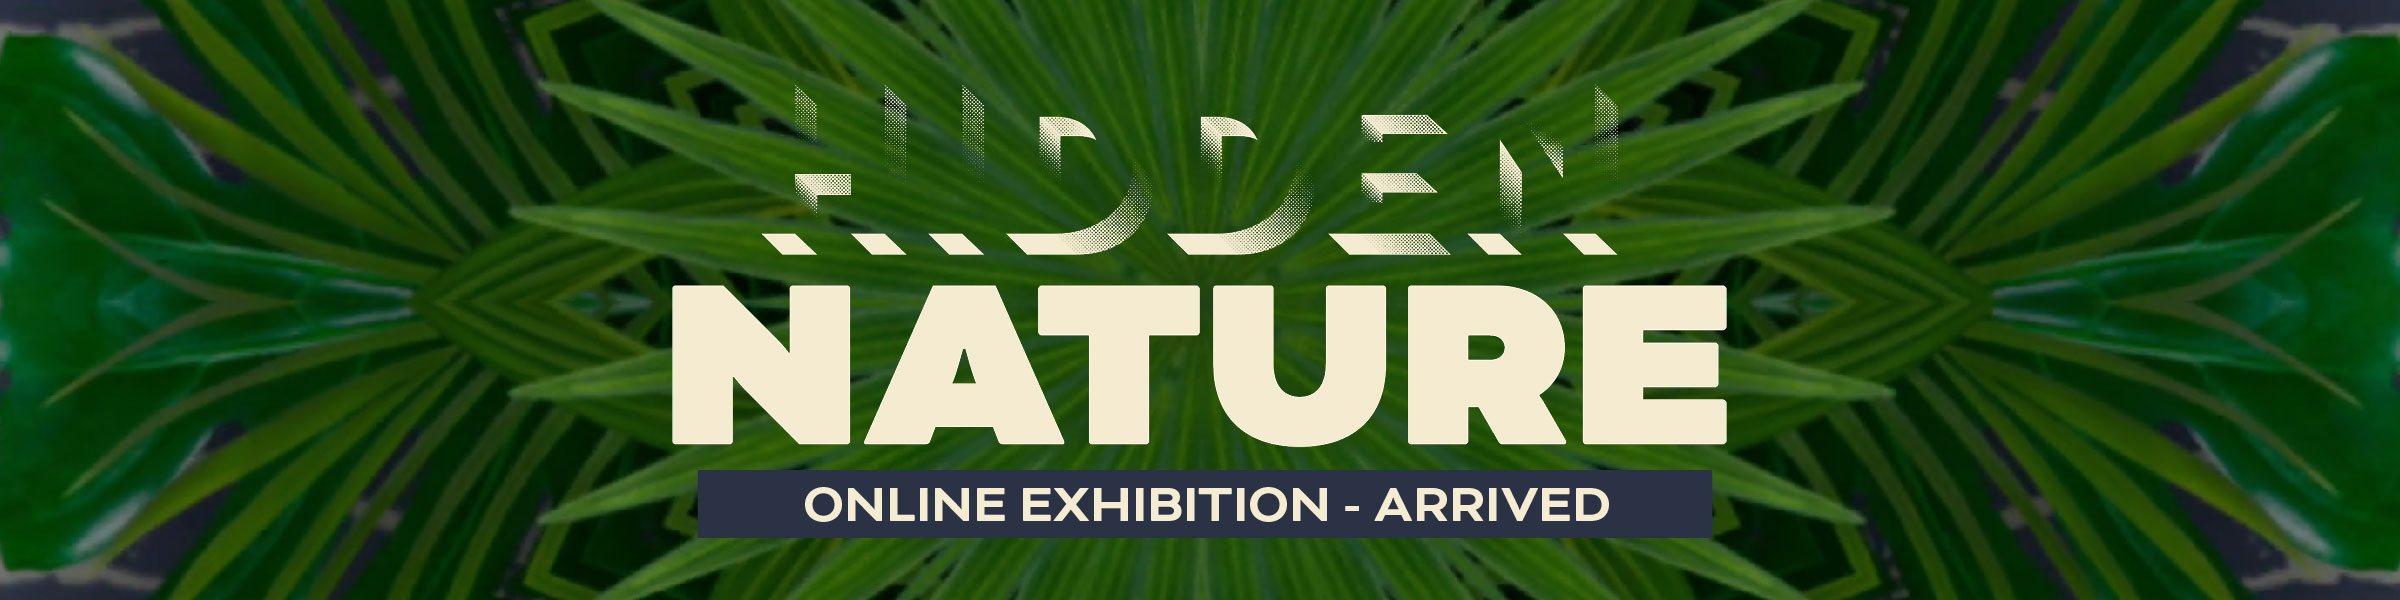 Hidden nature exhibition - open now